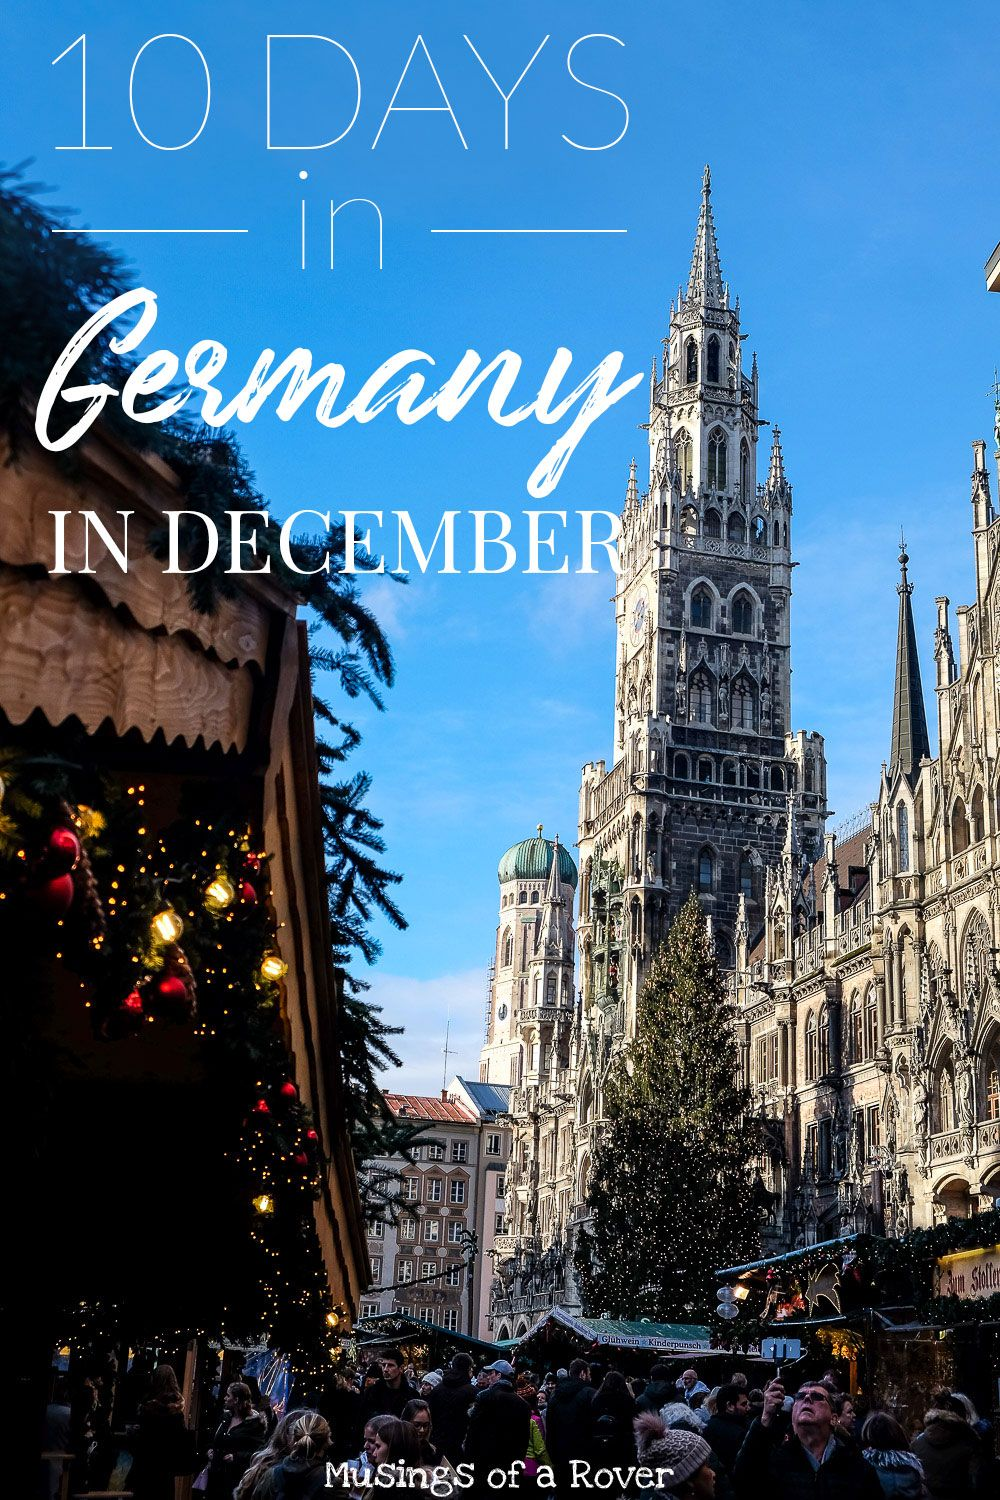 Heading to Germany in December? This 10 Day Itinerary is all about the Christmas Markets and what you can do in December. Loaded with the best things to do (including christmas markets, historical sites, viewpoints) which cities and towns to hit, where to eat, and where to stay, you'll be able to plan your trip in no time. It also includes a packing list so you can know how much you need to bring. Get ready to experience Christmas in Germany!